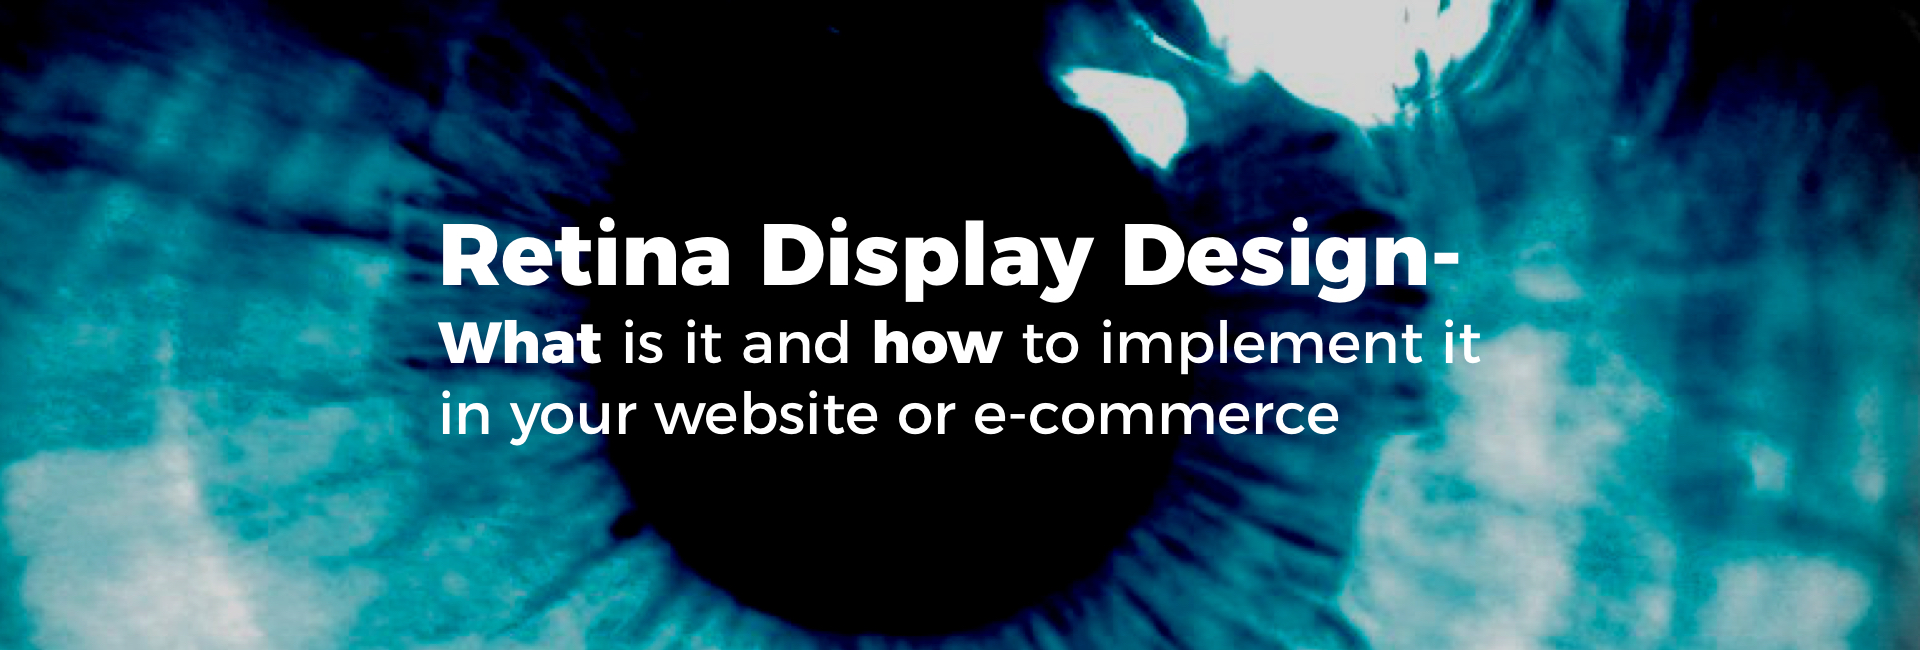 Retina Display Design - What Is it and How to Implement it in Your Website or E-Commerce